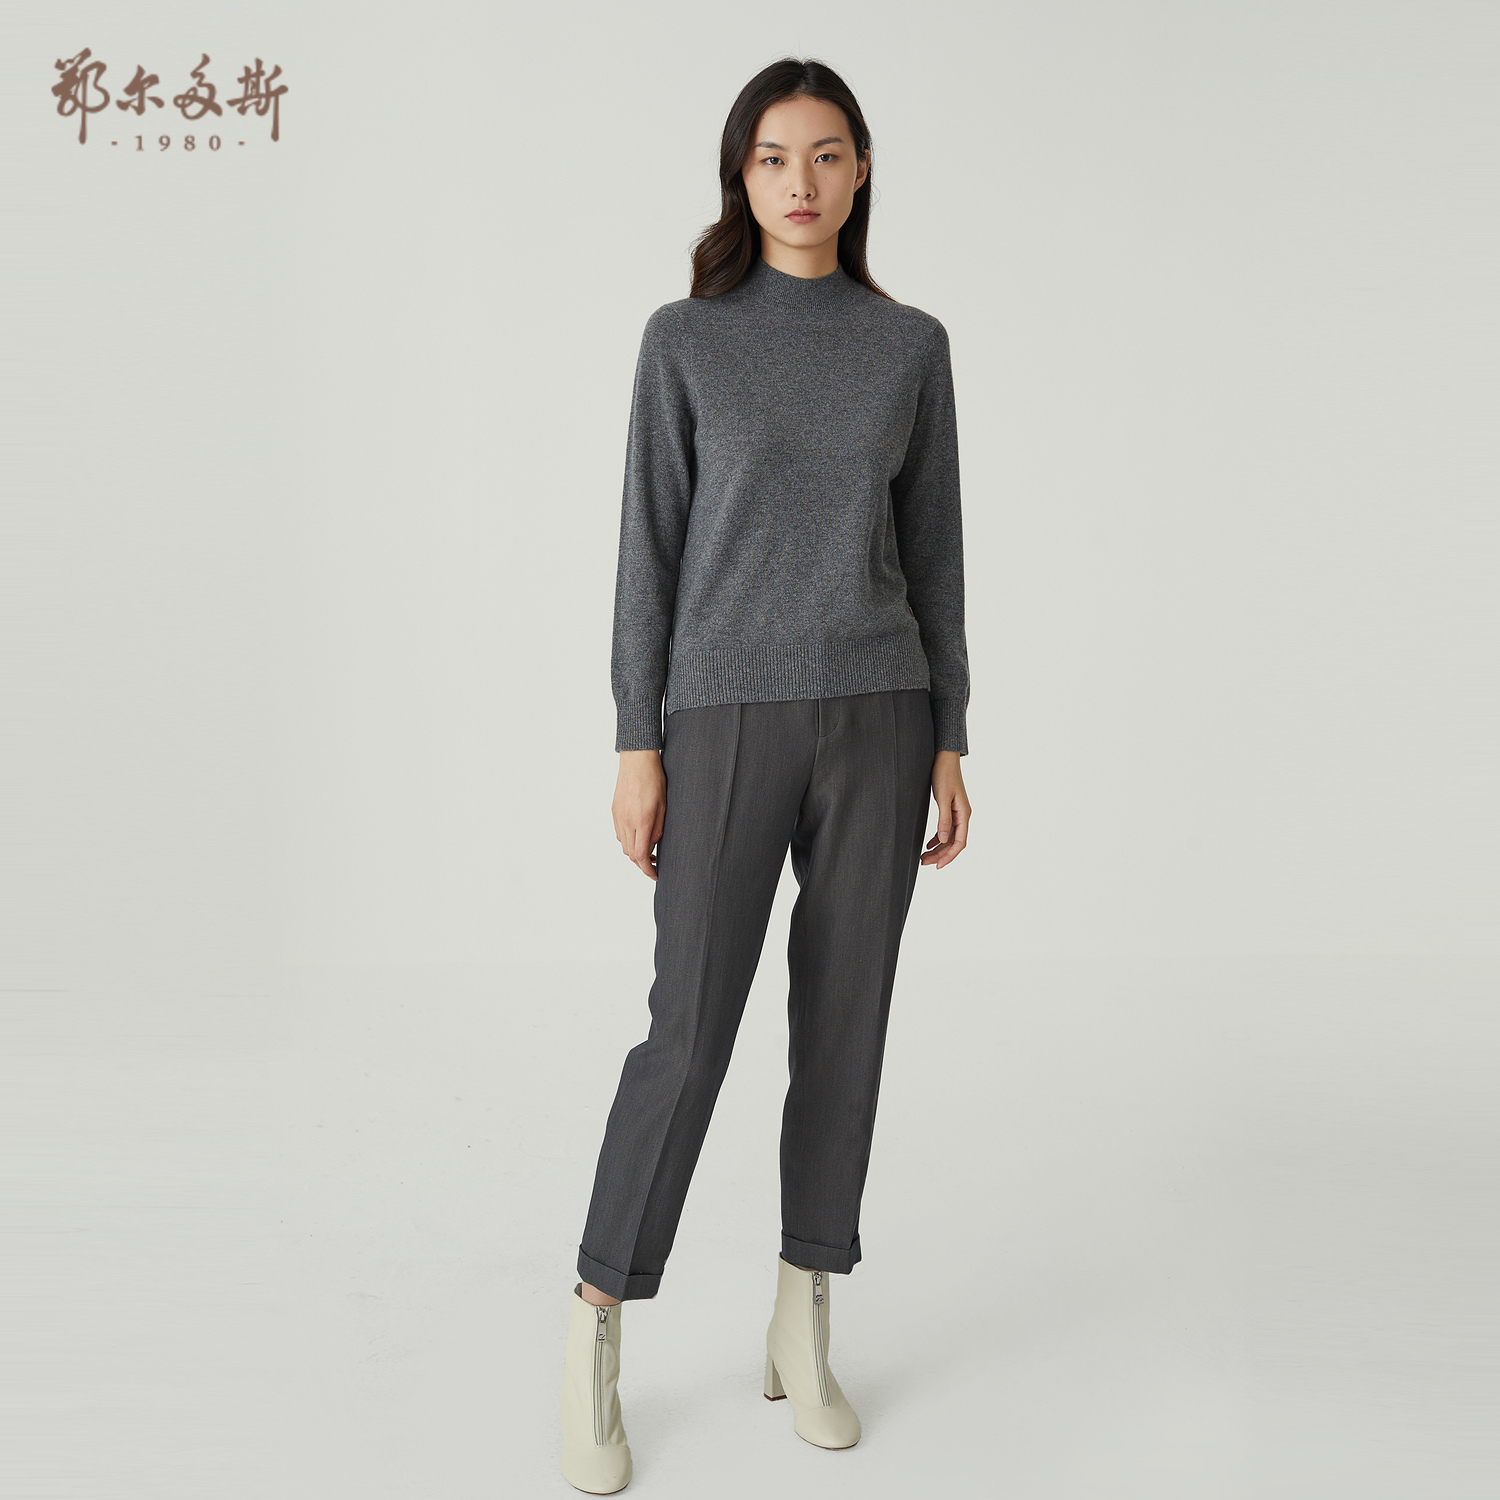 Ordos 1980 20 autumn winter new semi-high-necked womens casual cashmere sweater